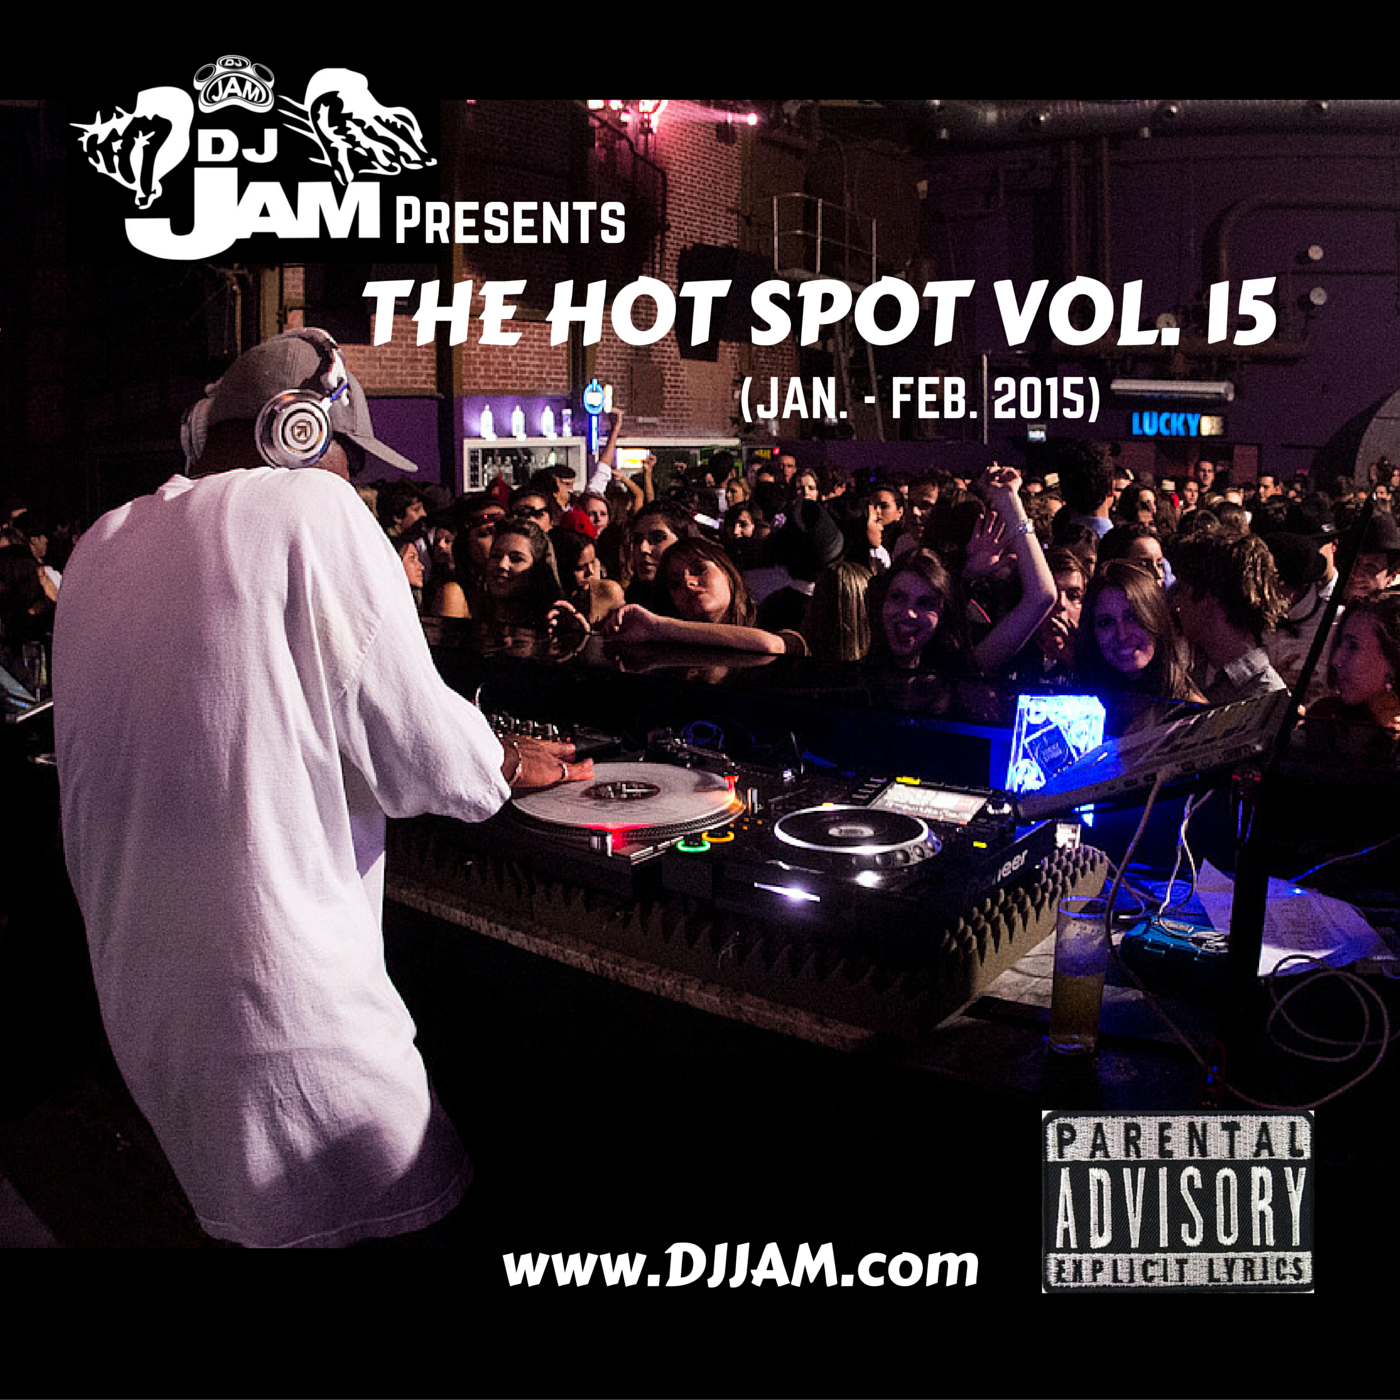 """New Music For The Holidays"" DJ Jam Presents ""The Hot Spot"" Vol.15 featuring San Diego's own @YOUNGLYXX @DaNxDieGo - Listen Now!!! #DJVATICAN"